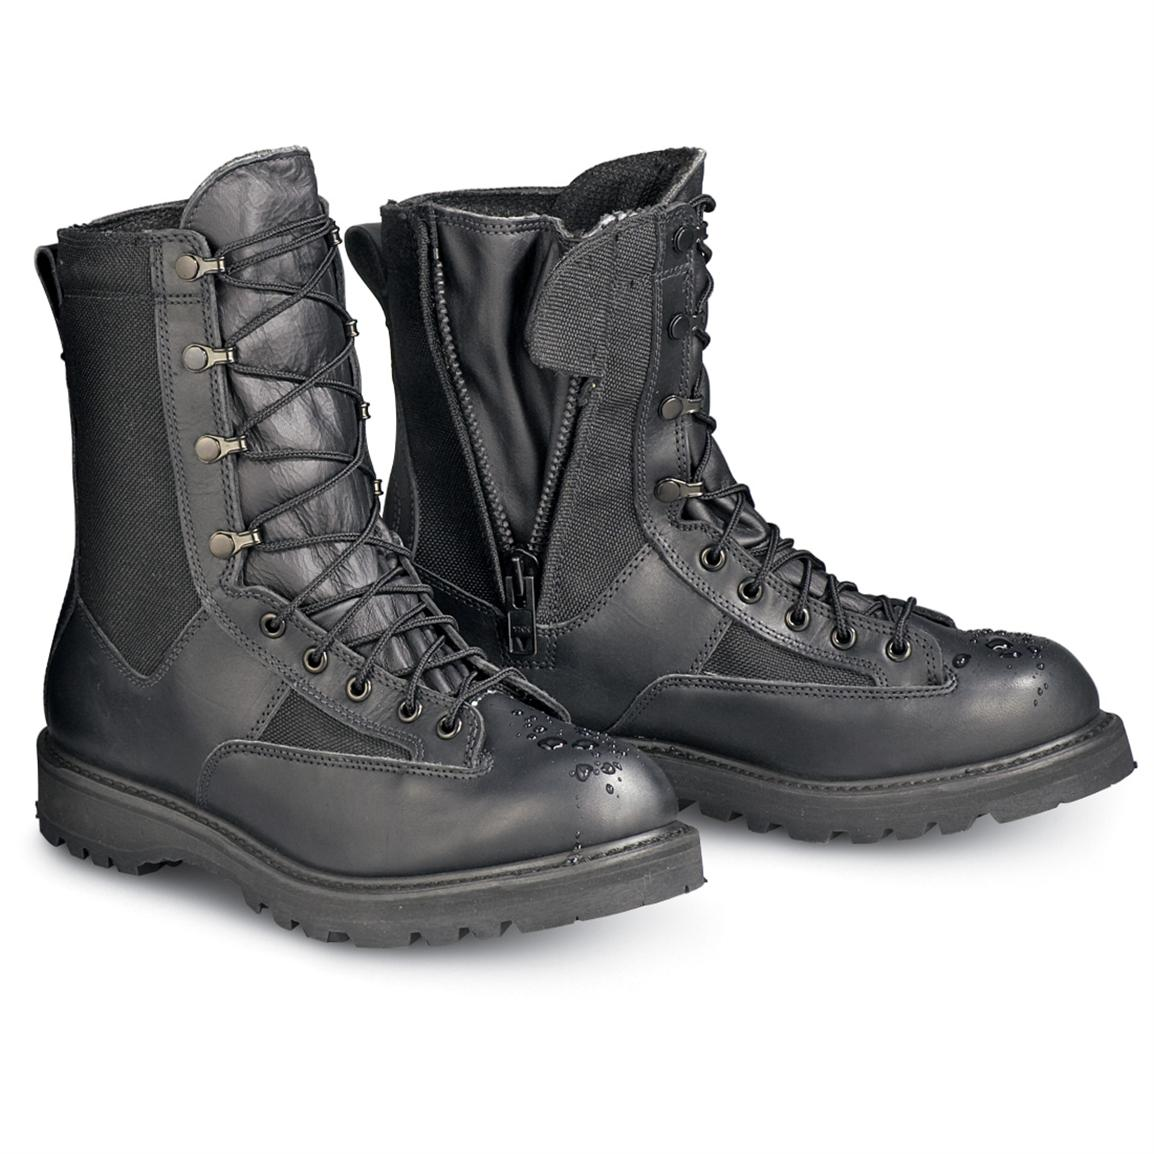 Men S Rocky 174 Waterproof Duty Boots Black 112783 Combat